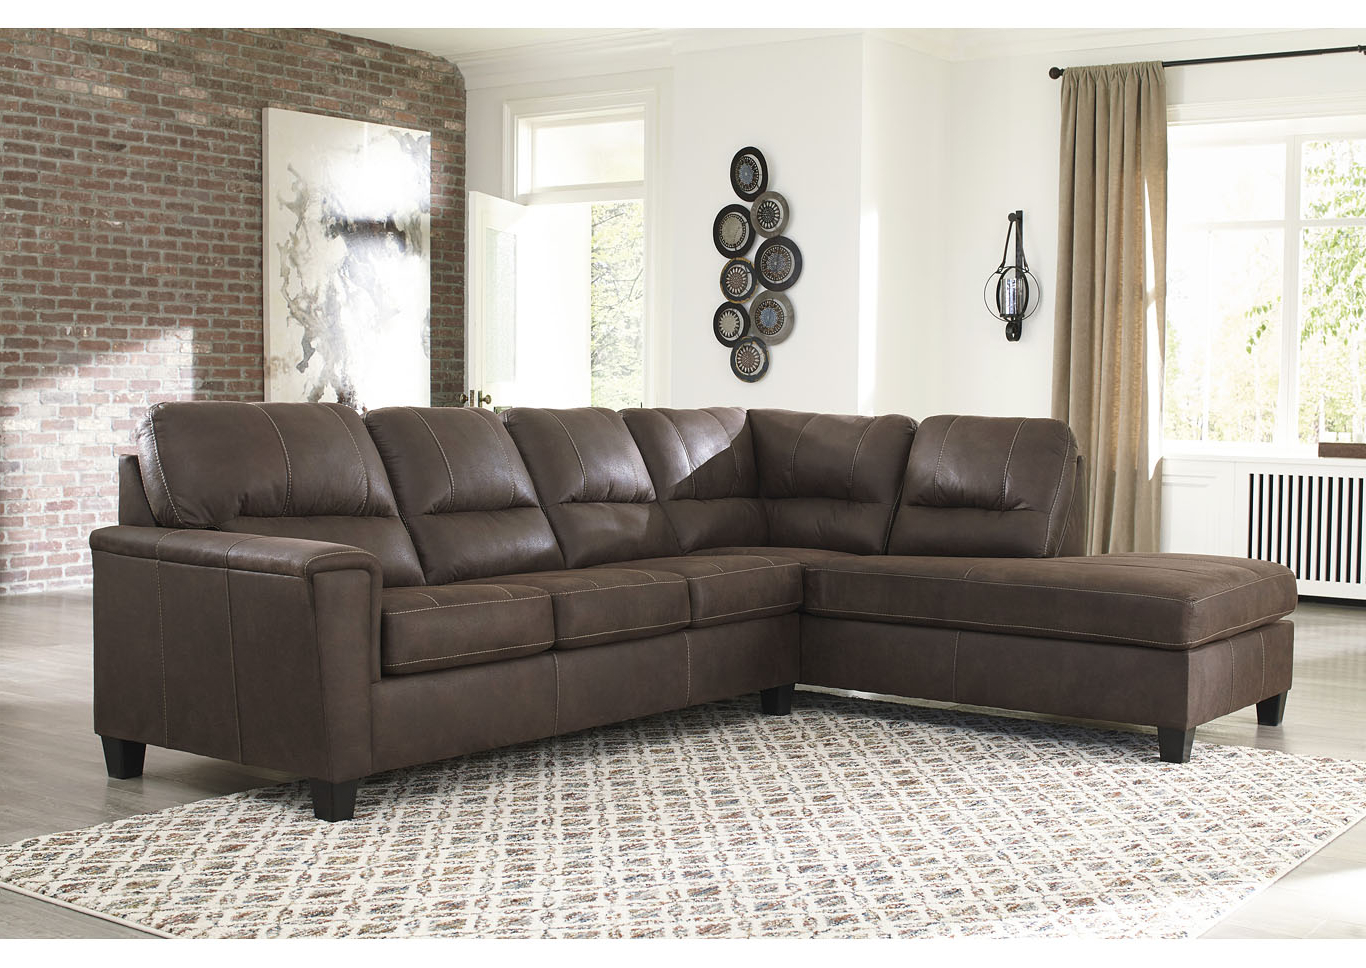 Fashionable Navi Chestnut Left Arm Facing Sofa Chaise All Brands Regarding 2pc Maddox Left Arm Facing Sectional Sofas With Chaise Brown (View 2 of 20)